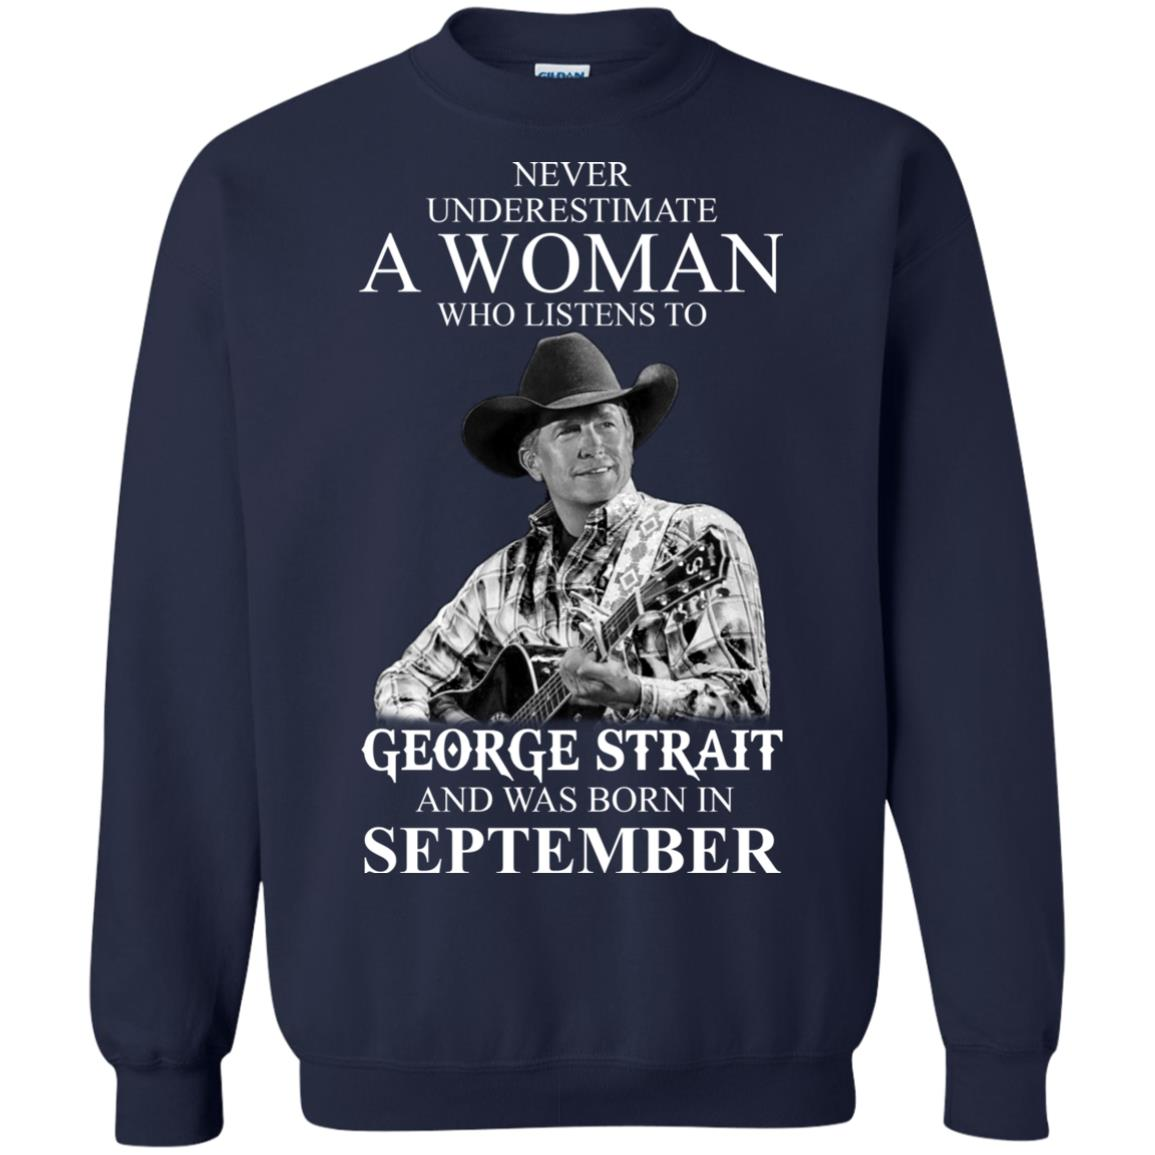 image 381 - Never Underestimate A Woman Who Listens To George Strait And Was Born In September shirt